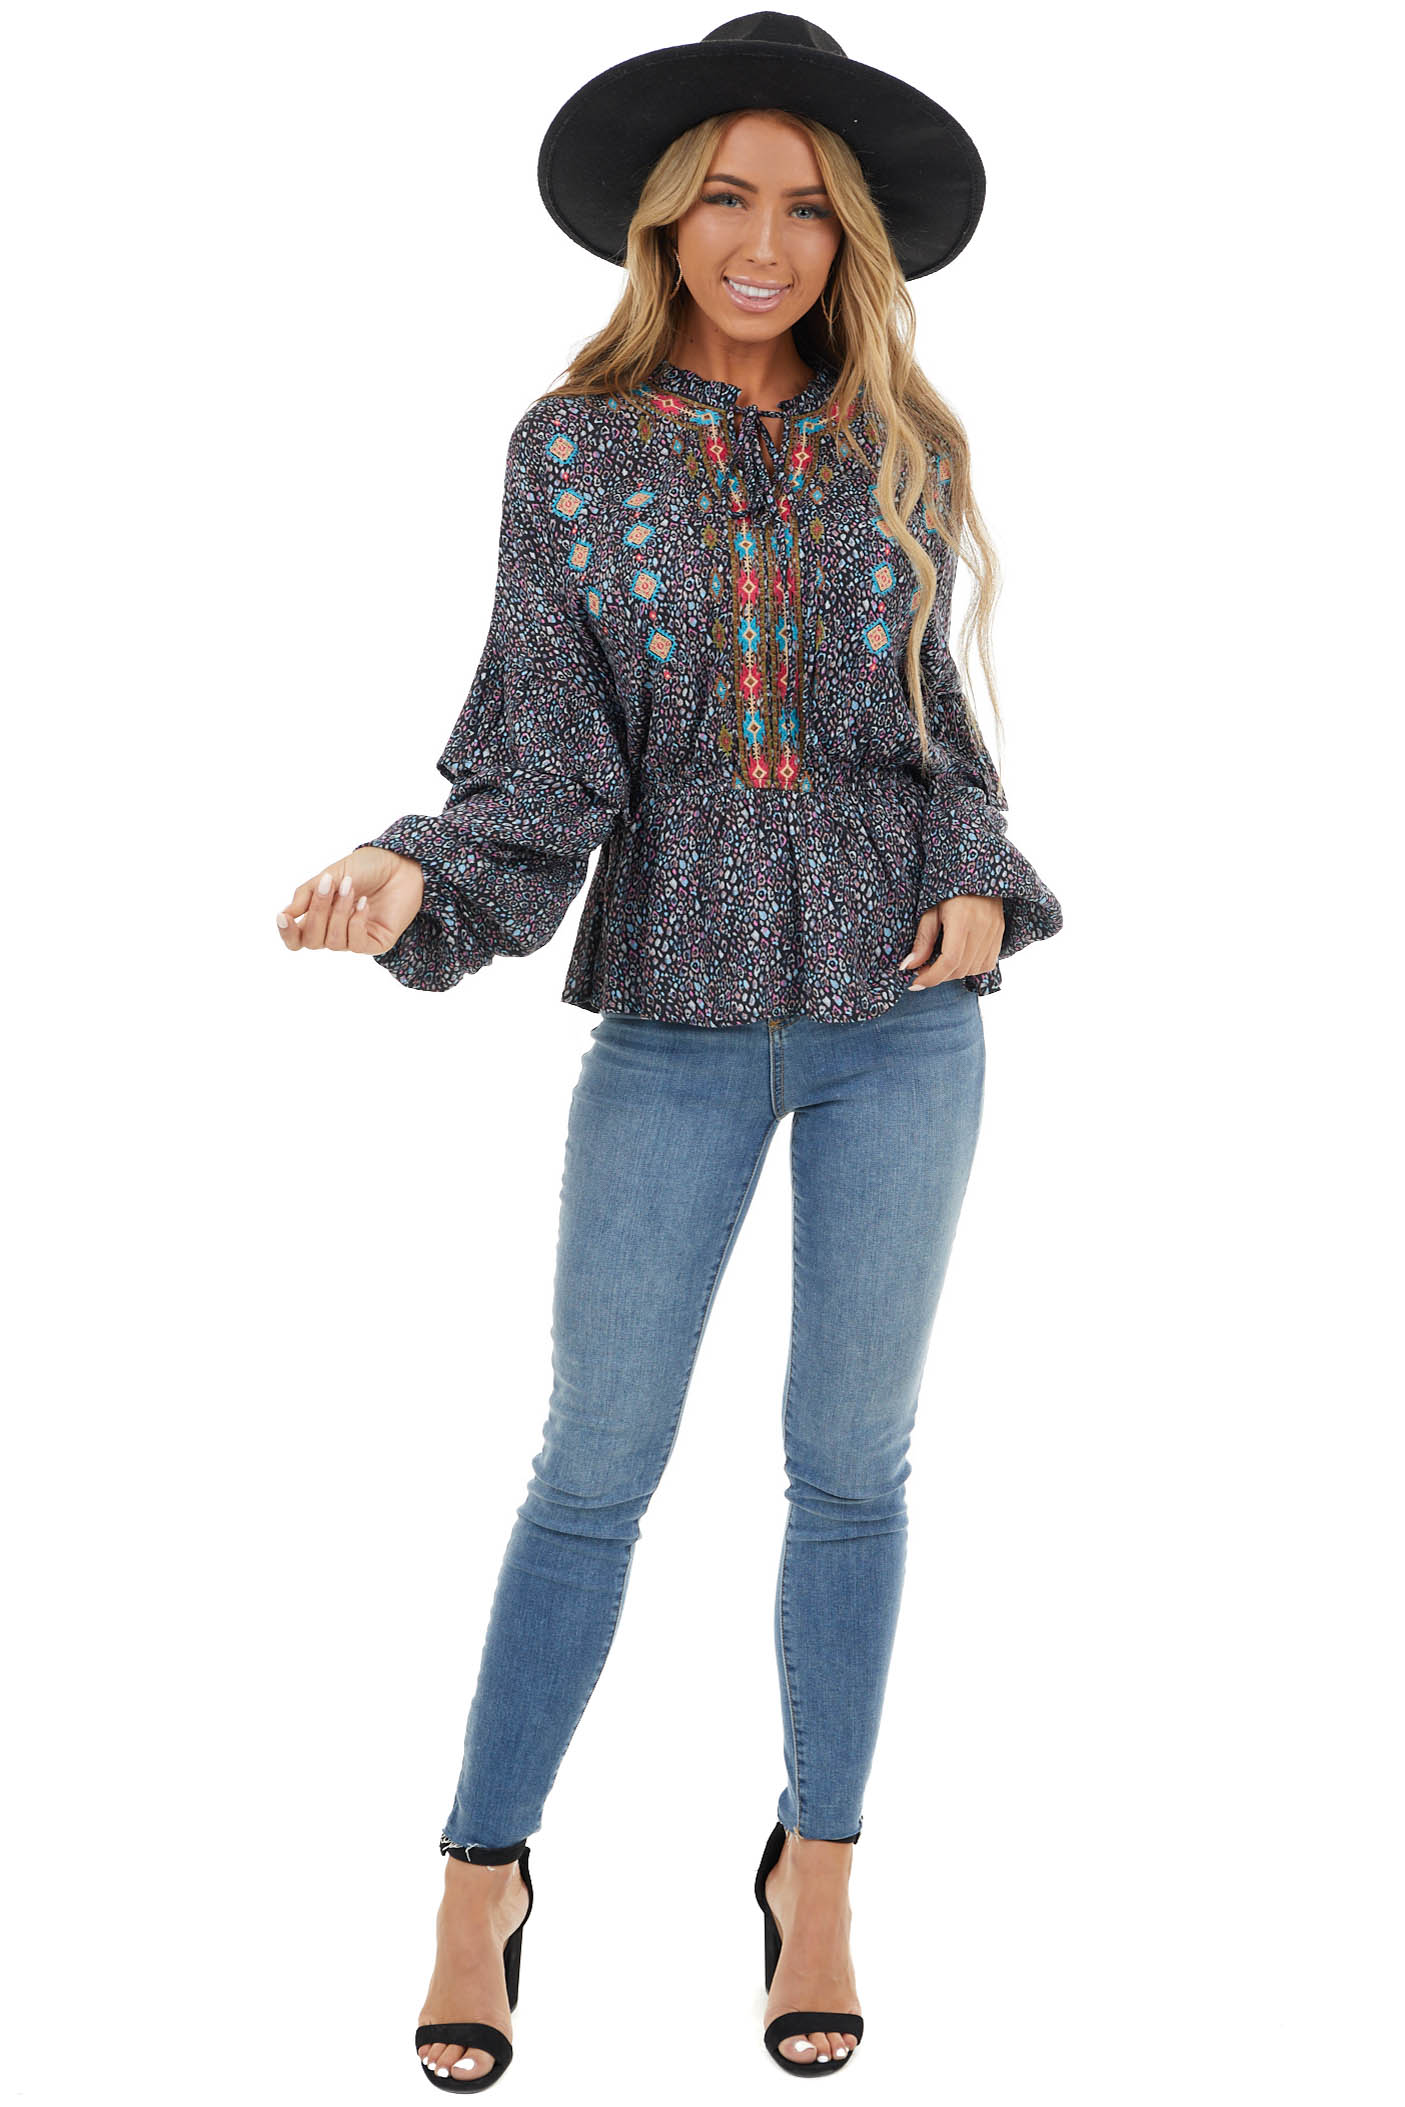 Black Leopard Long Puff Sleeve Top with Embroidered Details